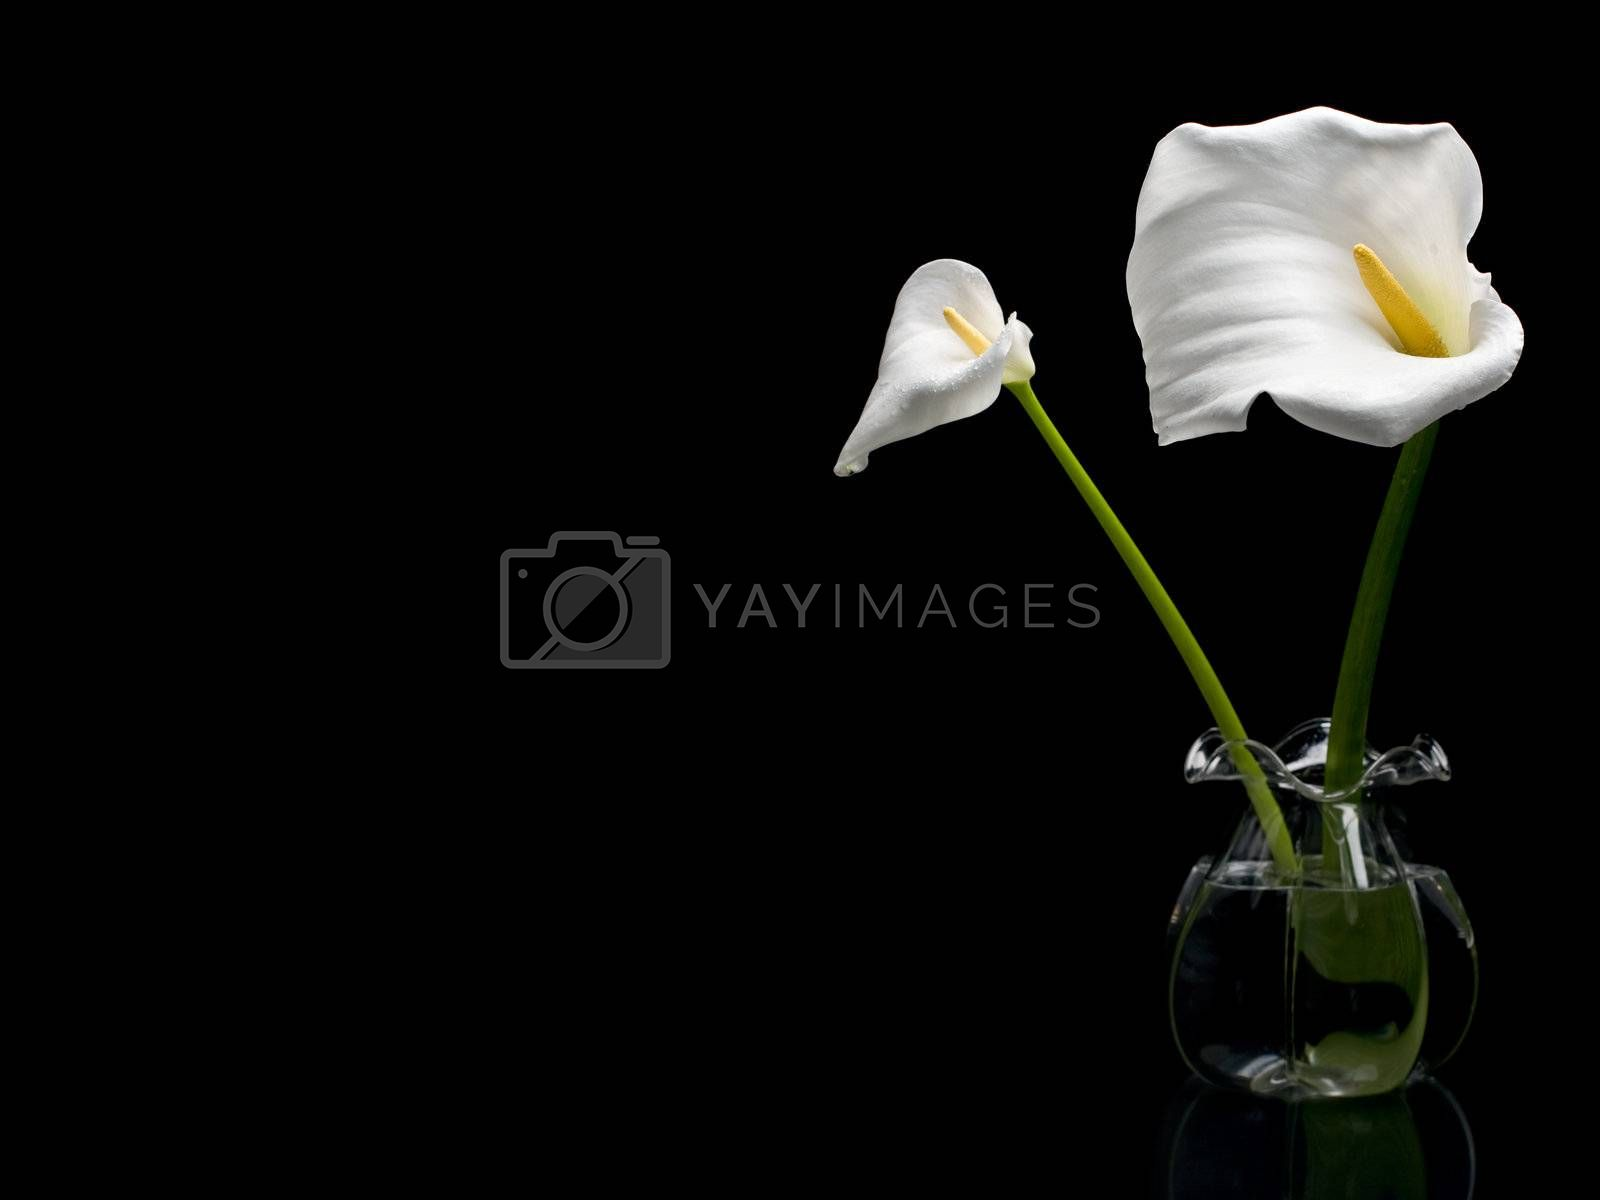 Royalty free image of Two White Callas by ajn